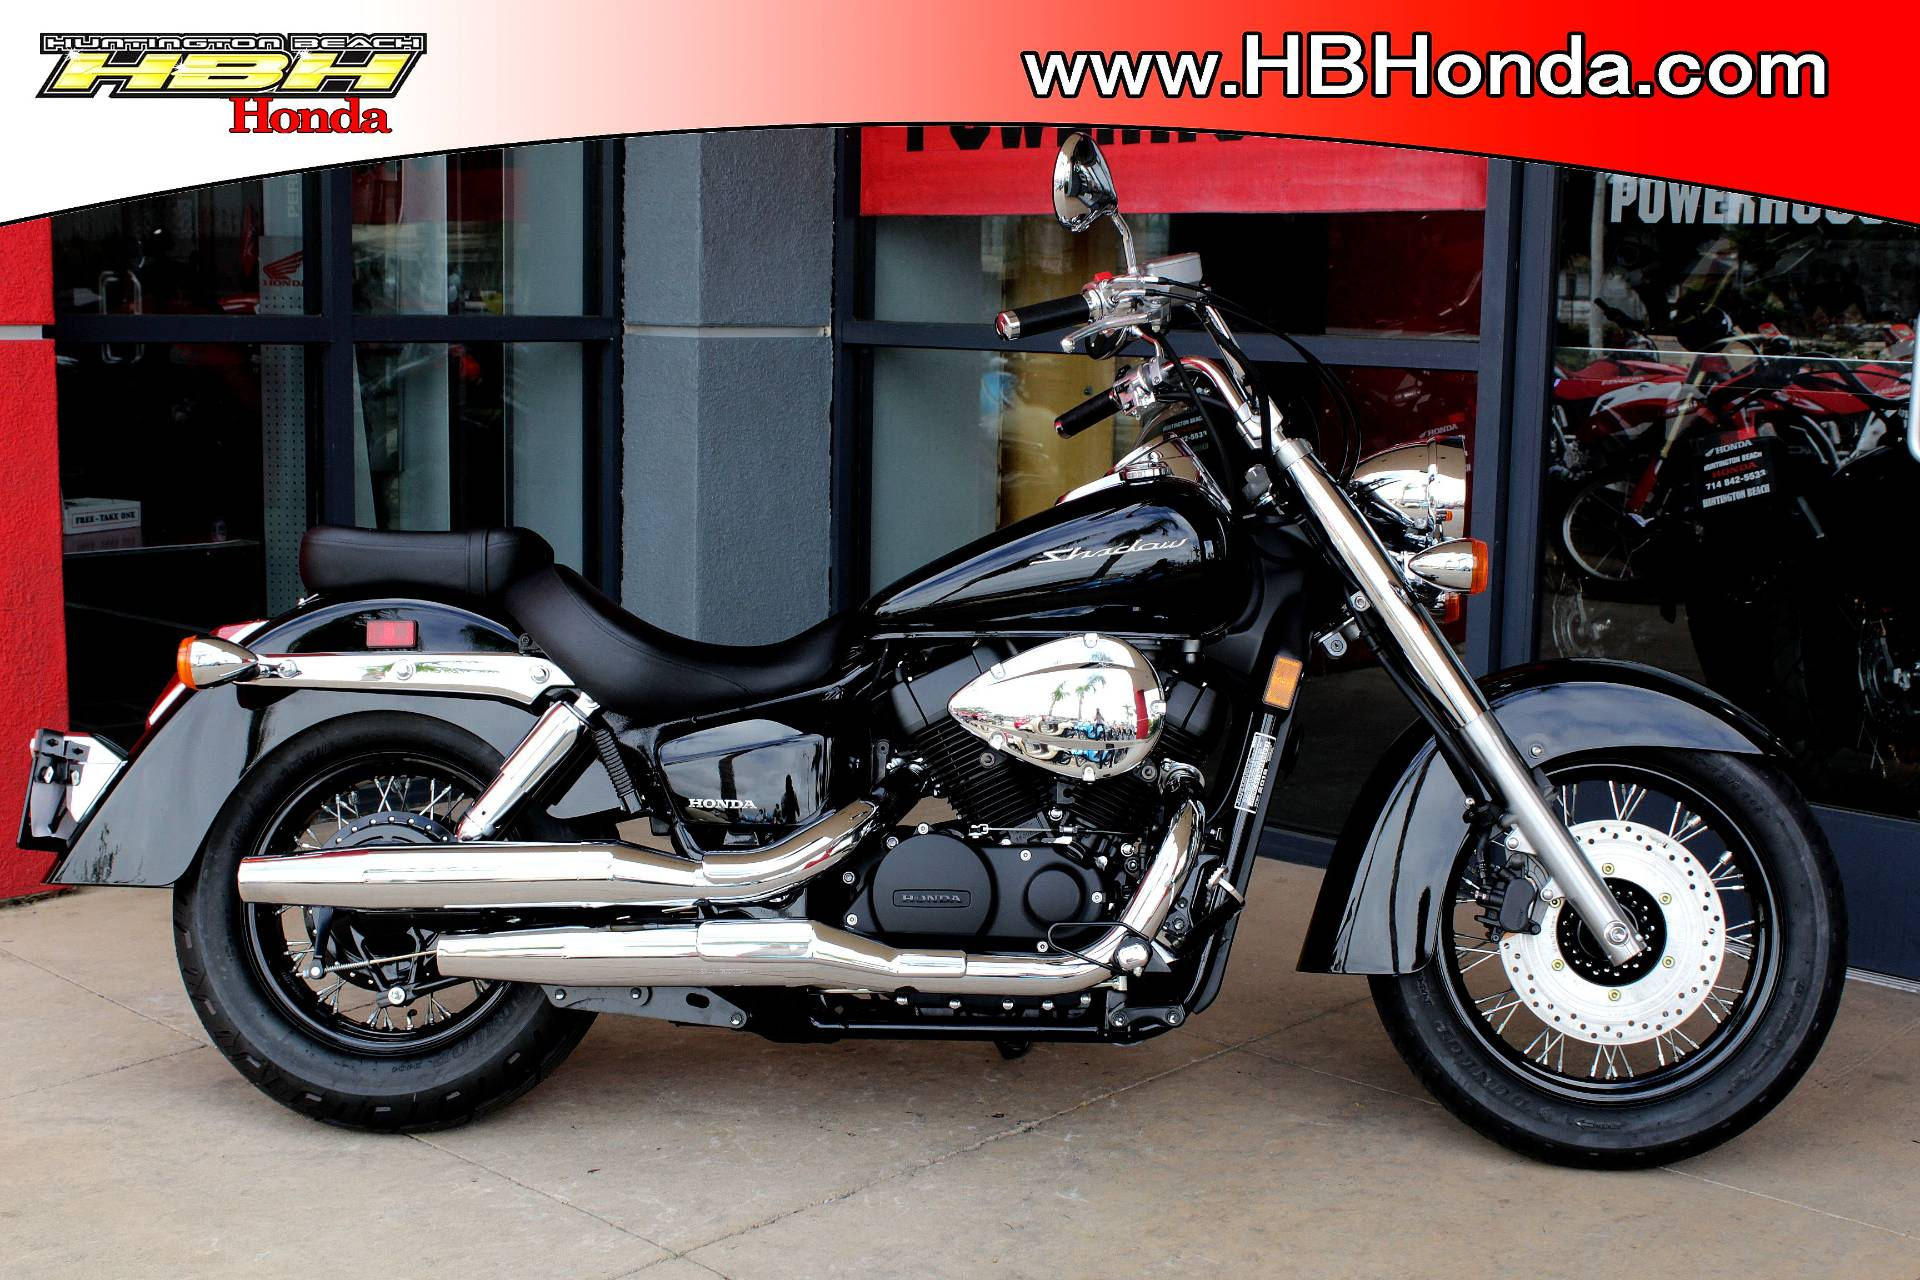 2019 Honda Shadow Aero 750 ABS in Huntington Beach, California - Photo 1